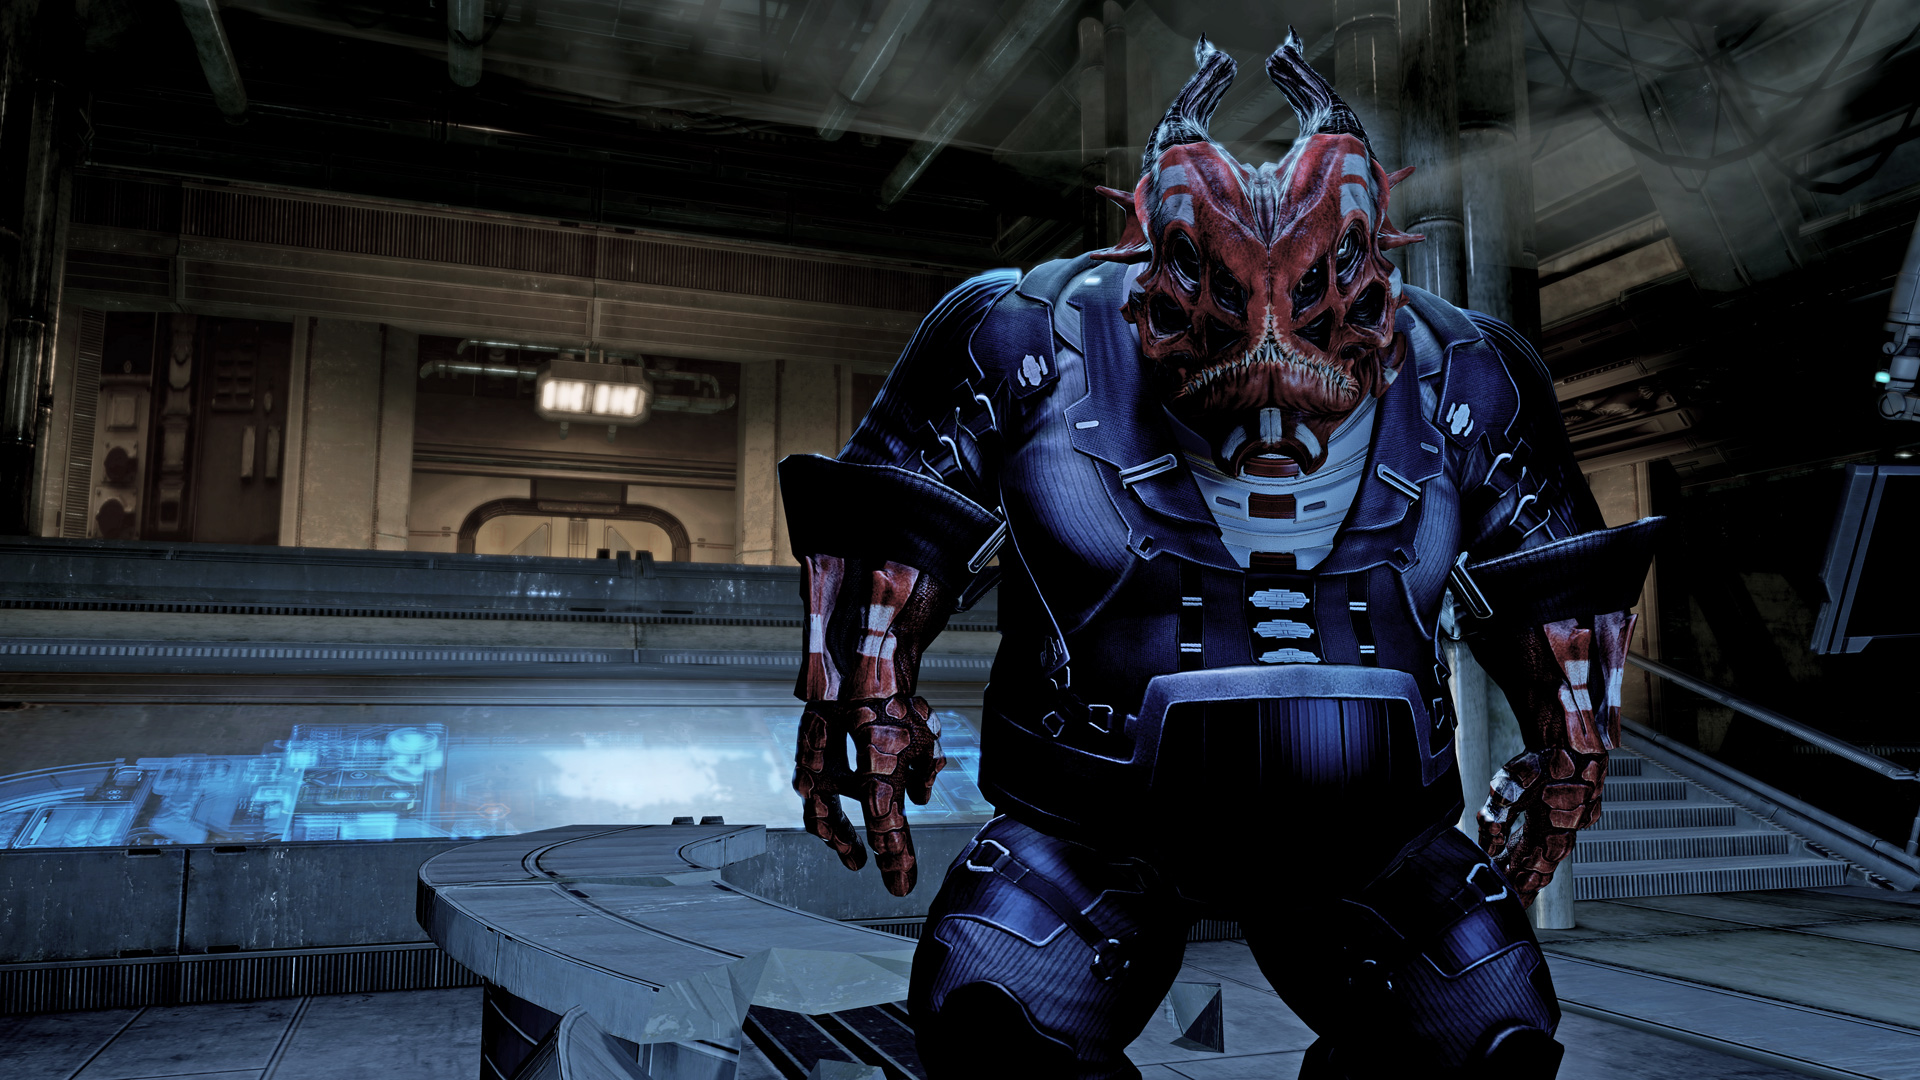 Mass Effect 2: Lair of the Shadow Broker - Wikipedia